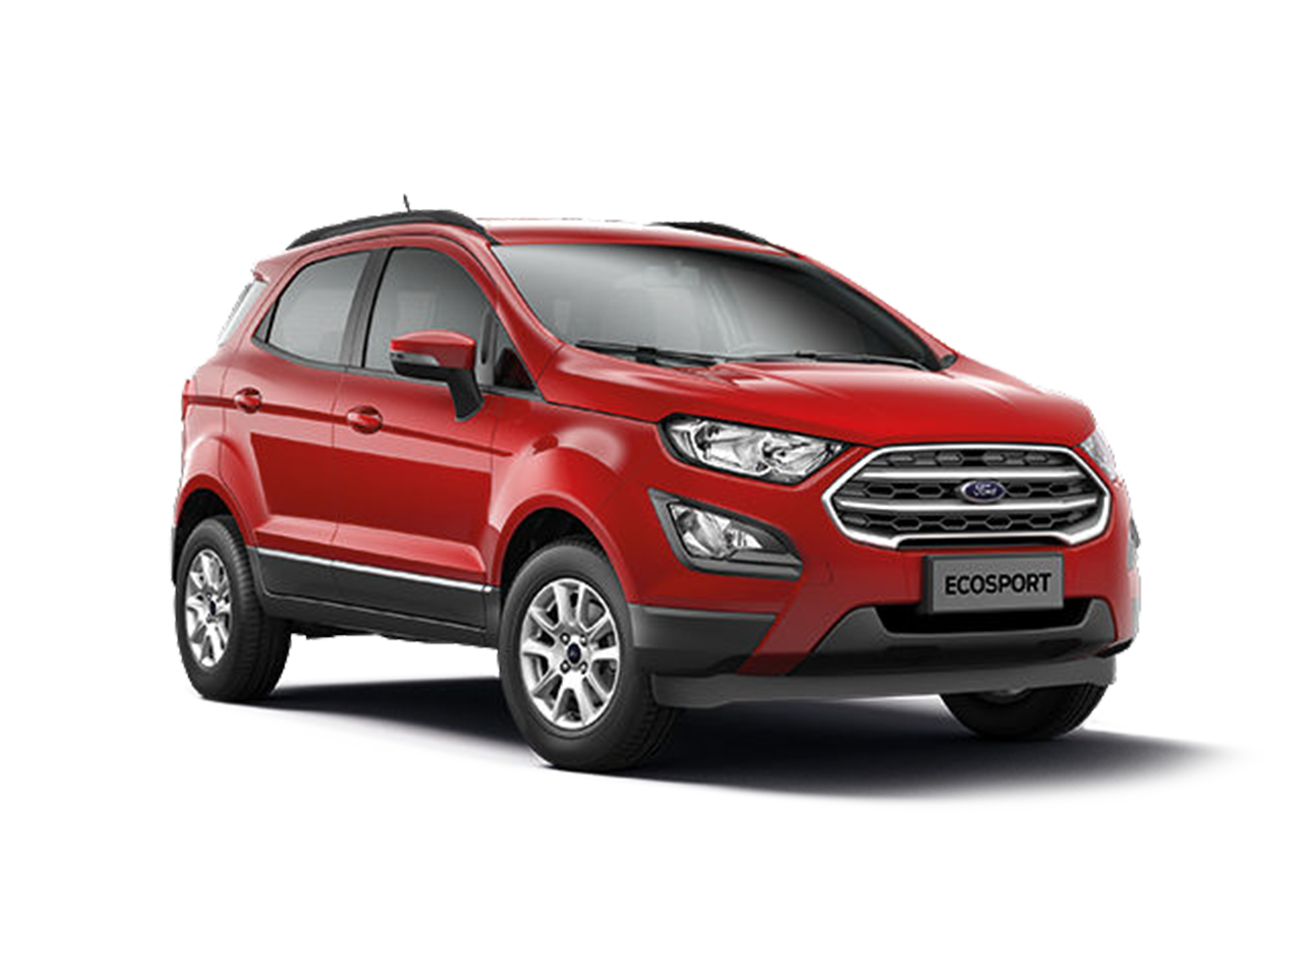 FORD - ECOSPORT - 1.5 TI-VCT FLEX SE MANUAL